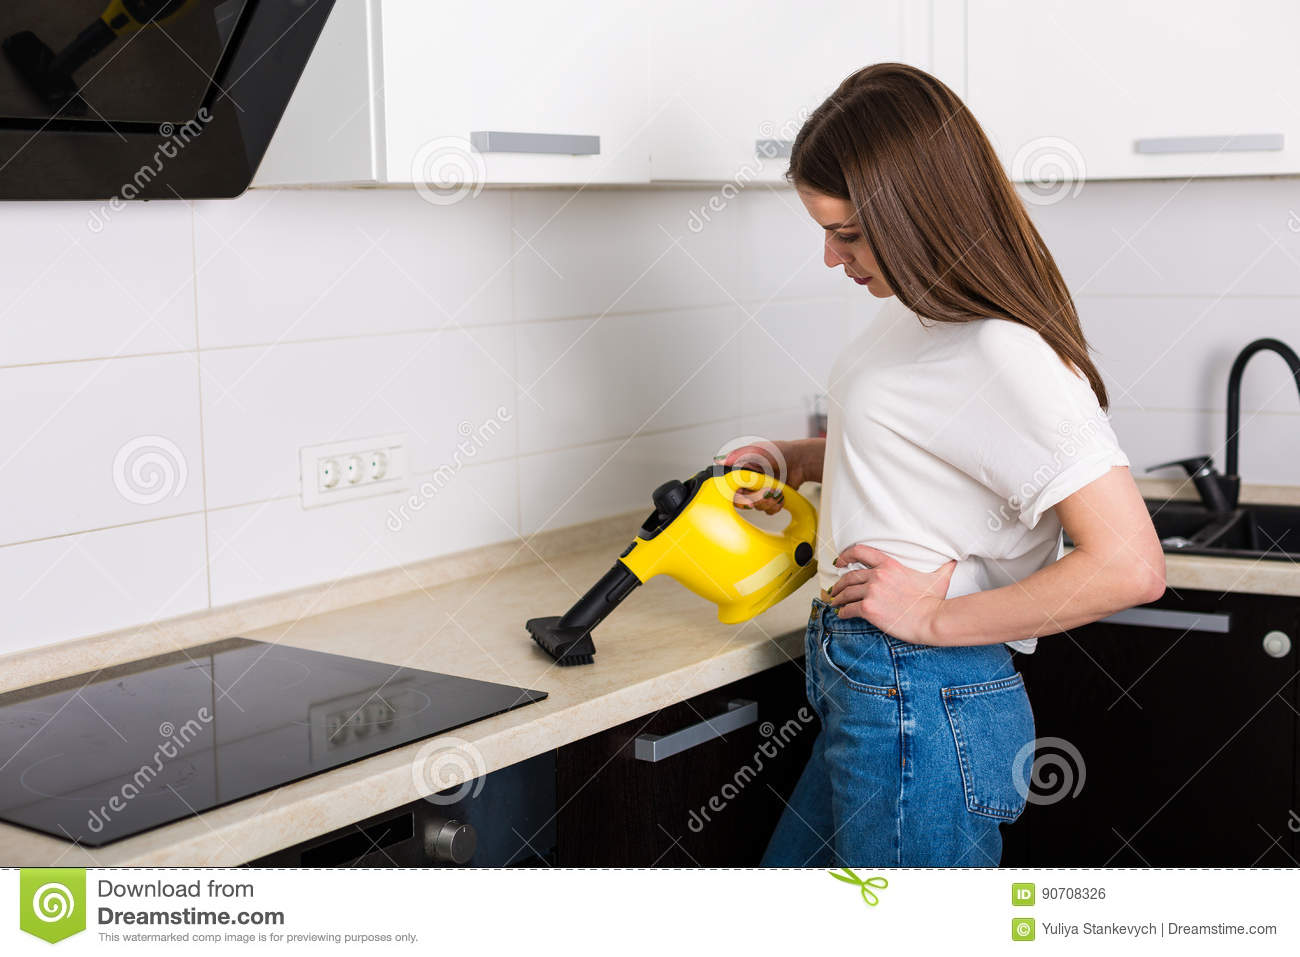 Woman Cleaning Kitchen With Steam Cleaner Stock Photo - Image of ...